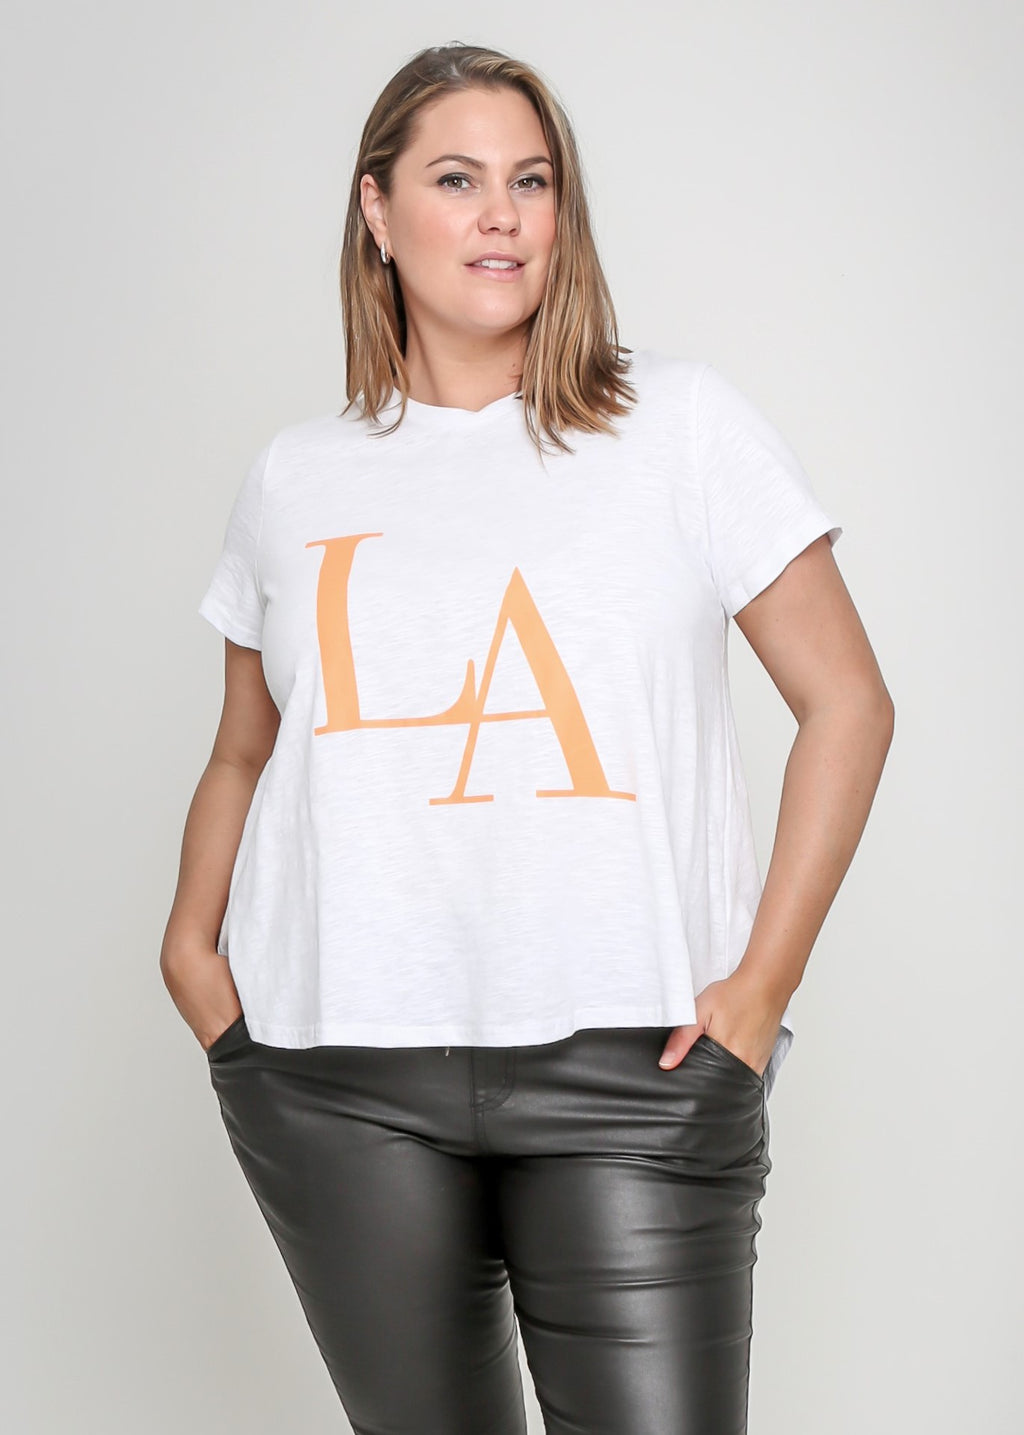 LARA TEE - ORANGE/WHITE - MARK DOWN MADNESS